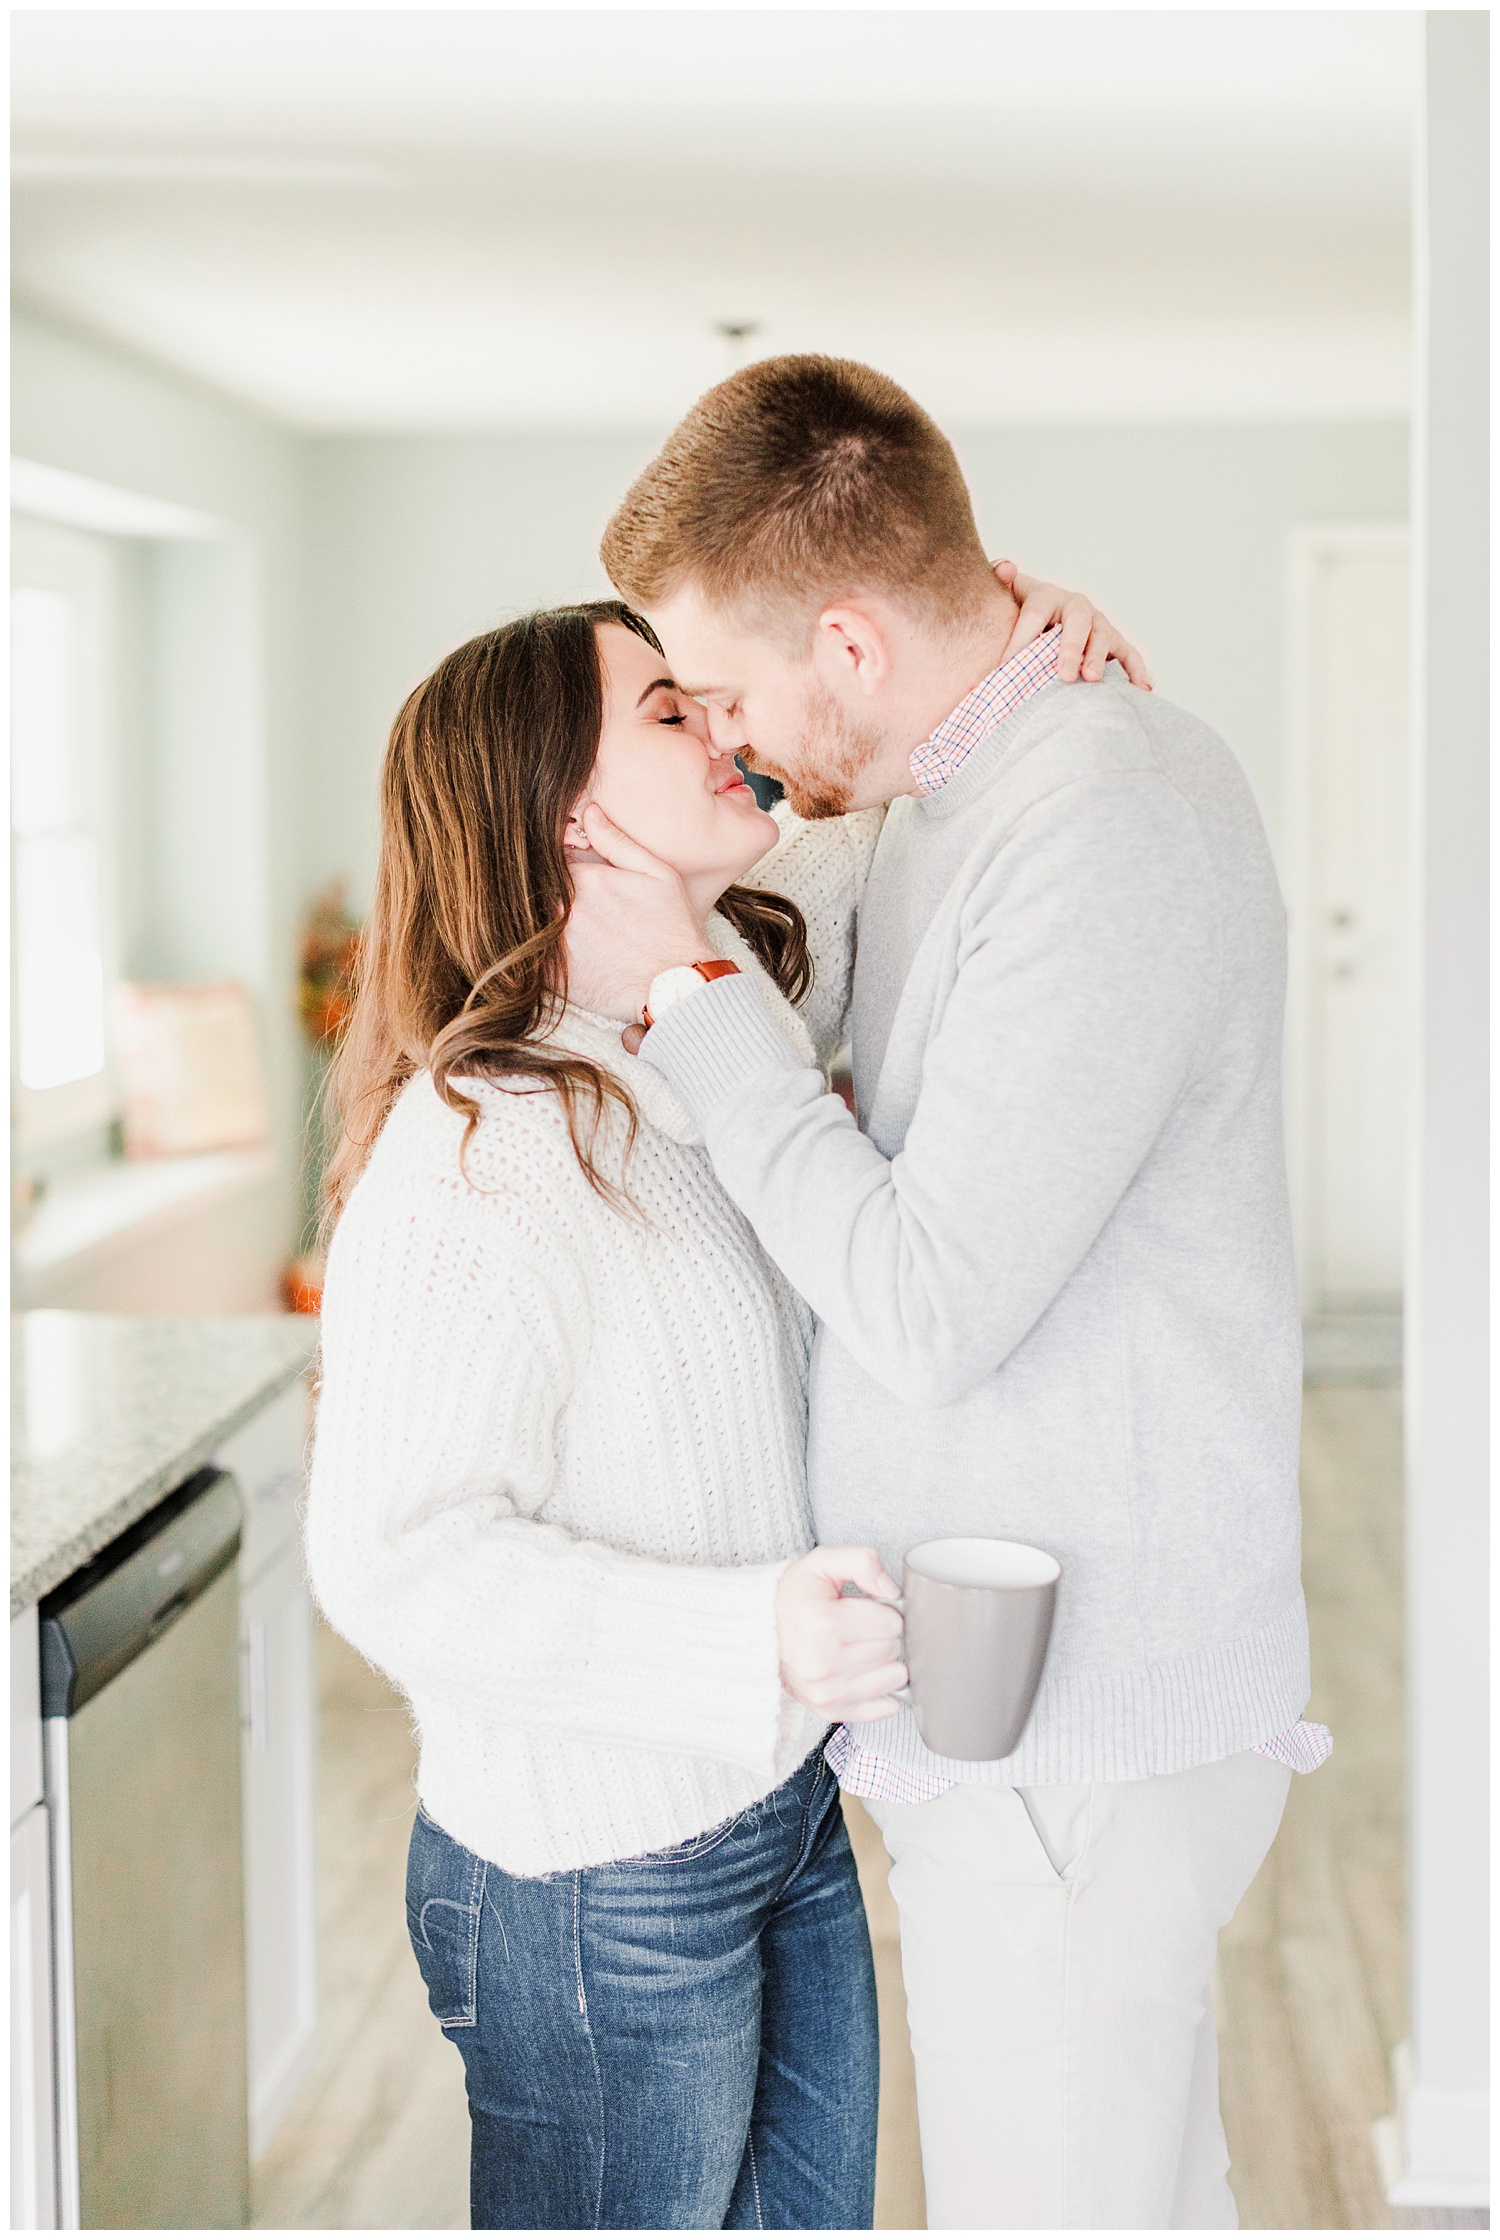 Jenna and Dustin slowly share a kiss in the middle of their bright and cozy kitchen | Iowa Wedding Photographer